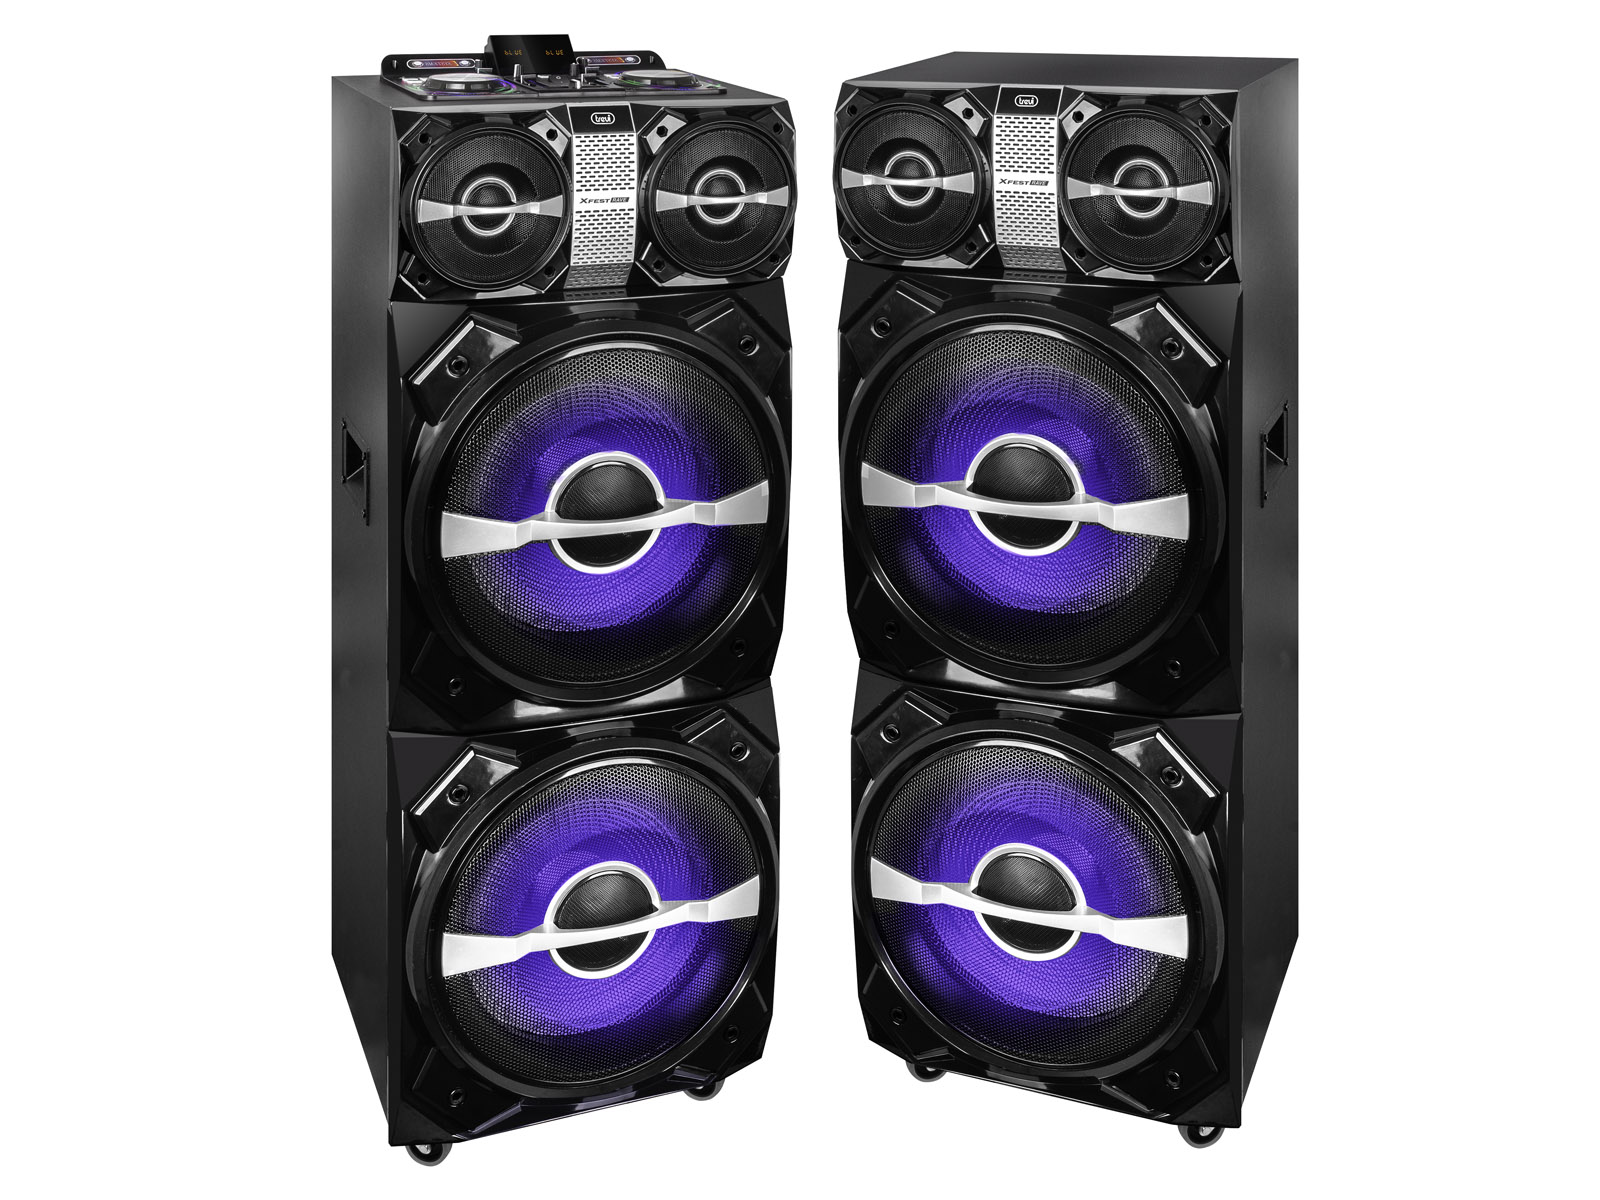 XF-4800-RAVE, double party speaker 600w, black